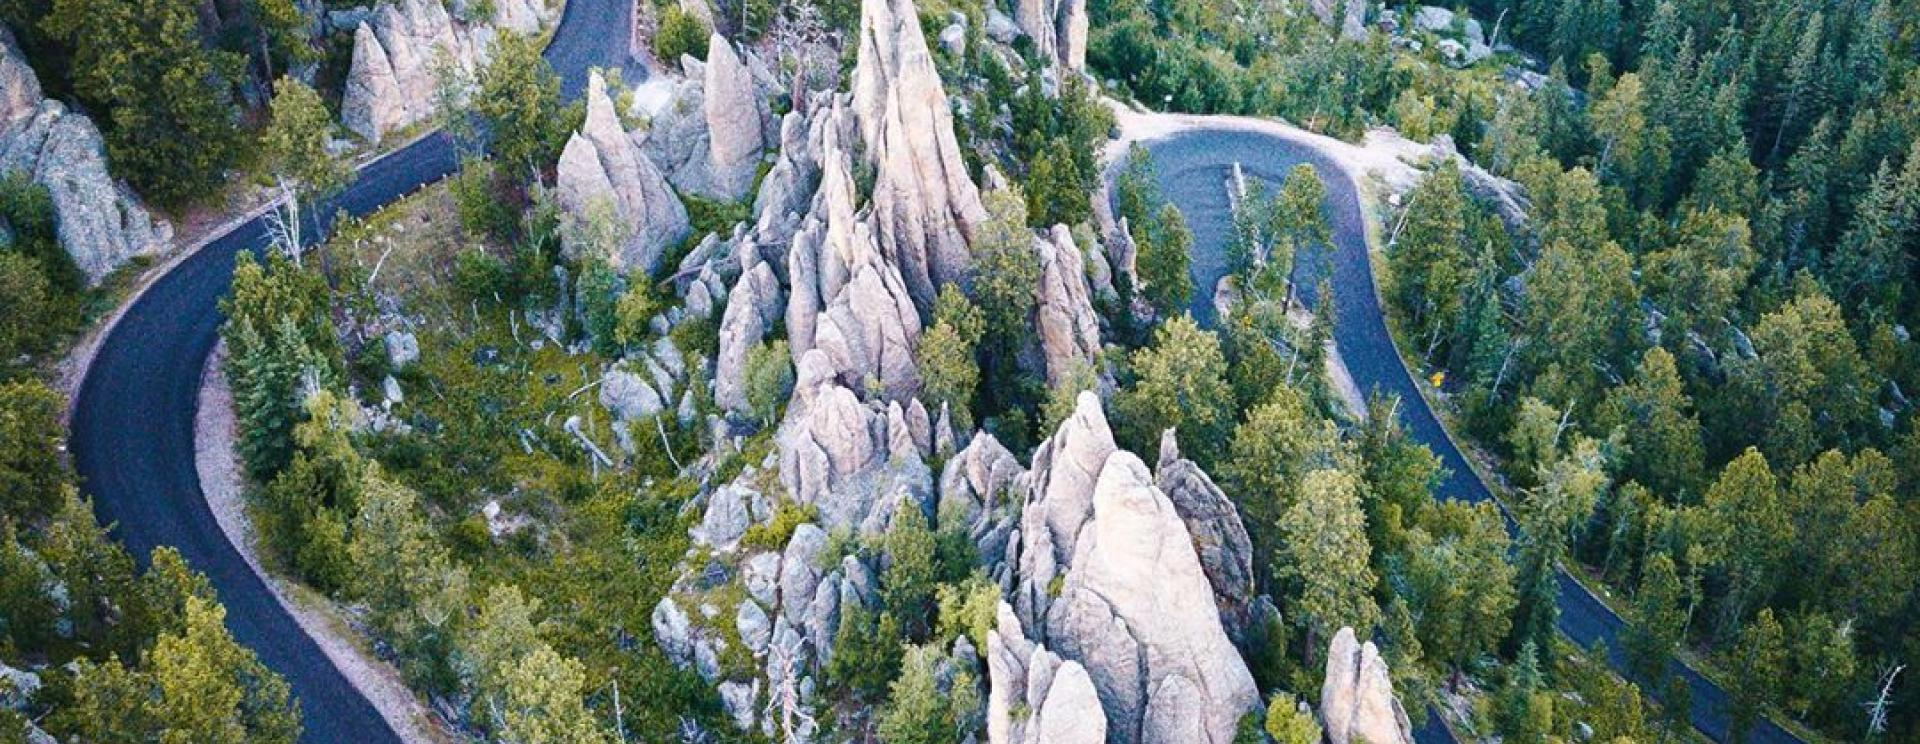 The 5 Most Remarkable Photos of the Black Hills and Badlands in April 2020